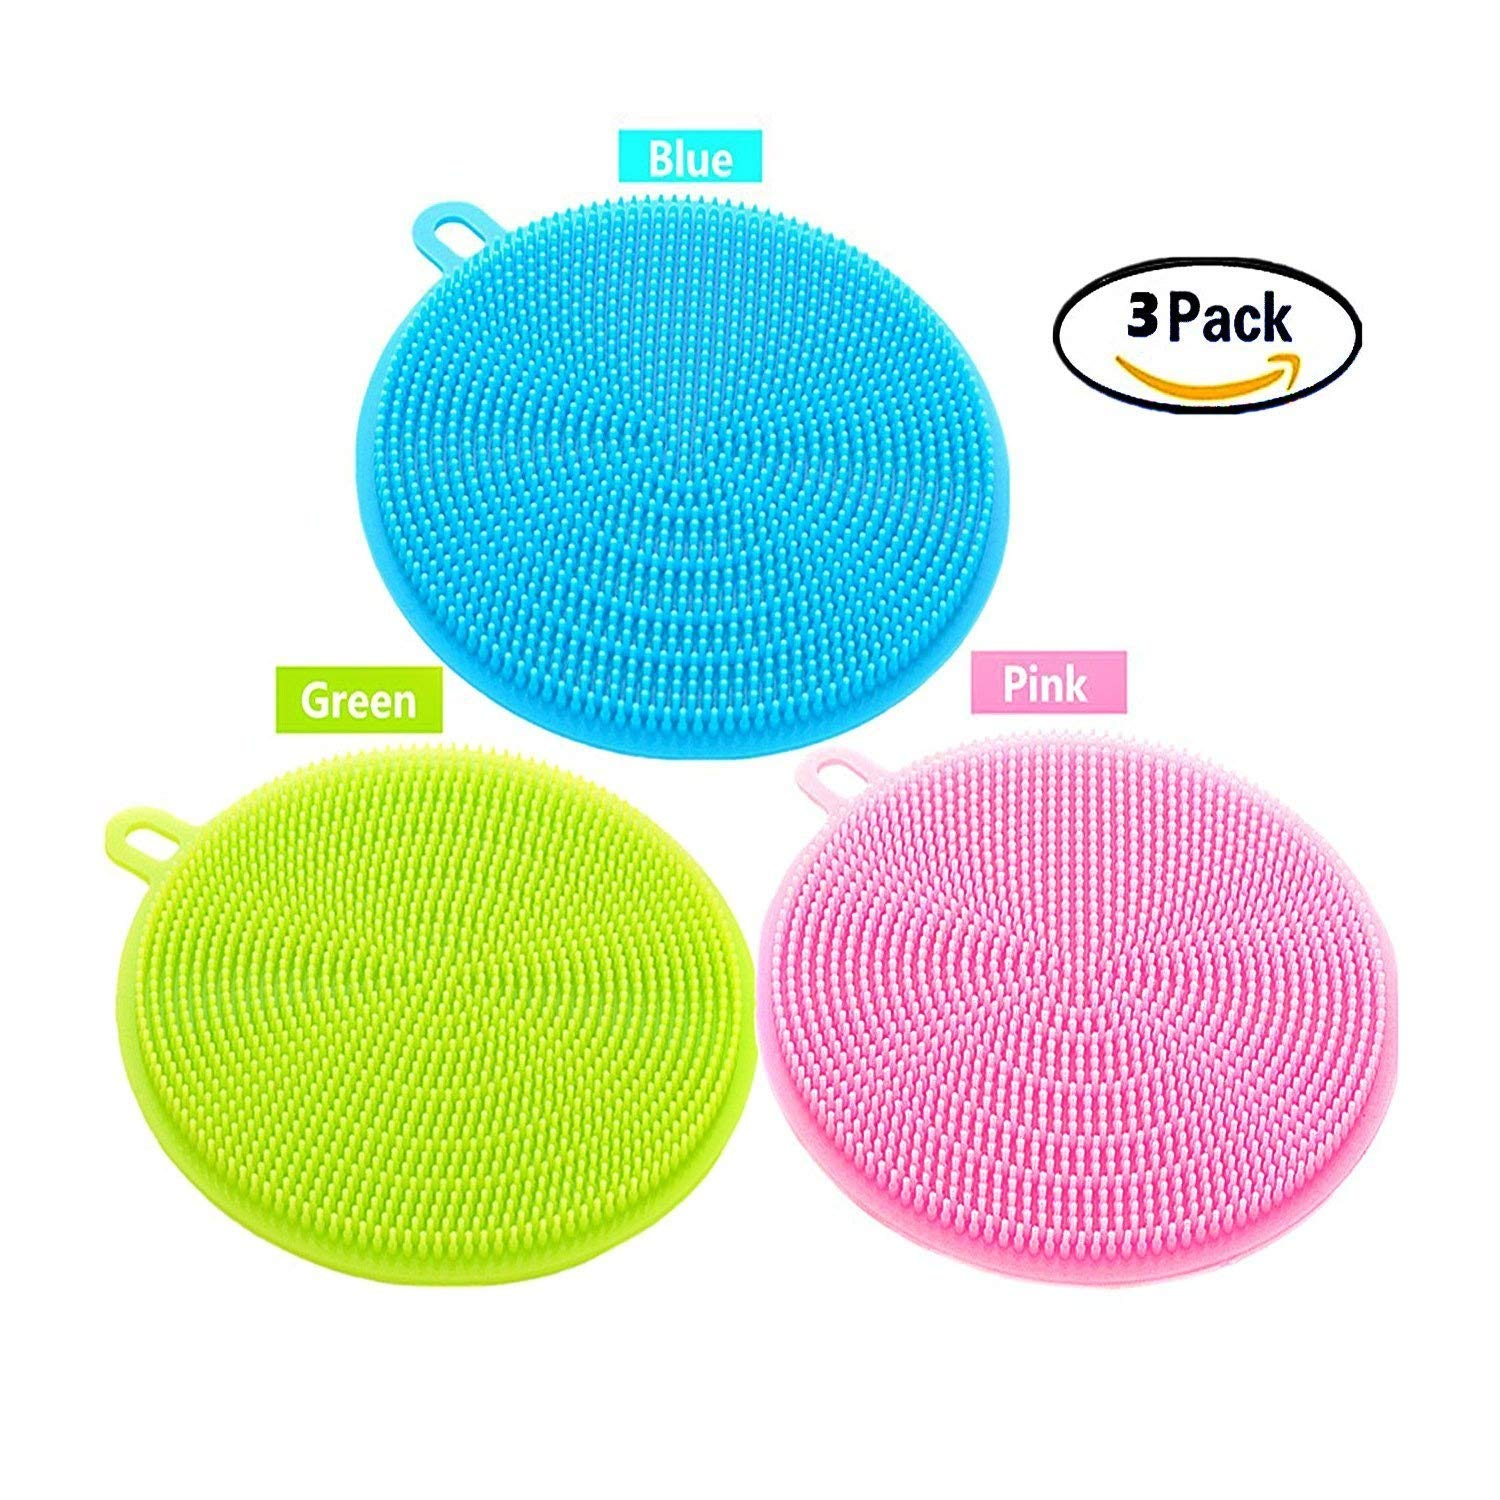 Kitchen Sponge, Pack of 3 Multi-Functional Silicone Sponges Non Stick Dishwashing Brush, Double Sides Used, Dish Towel Scrubber for Kitchen Wash Pot Pan Dish Bowl, Wash Fruit and Vegetable